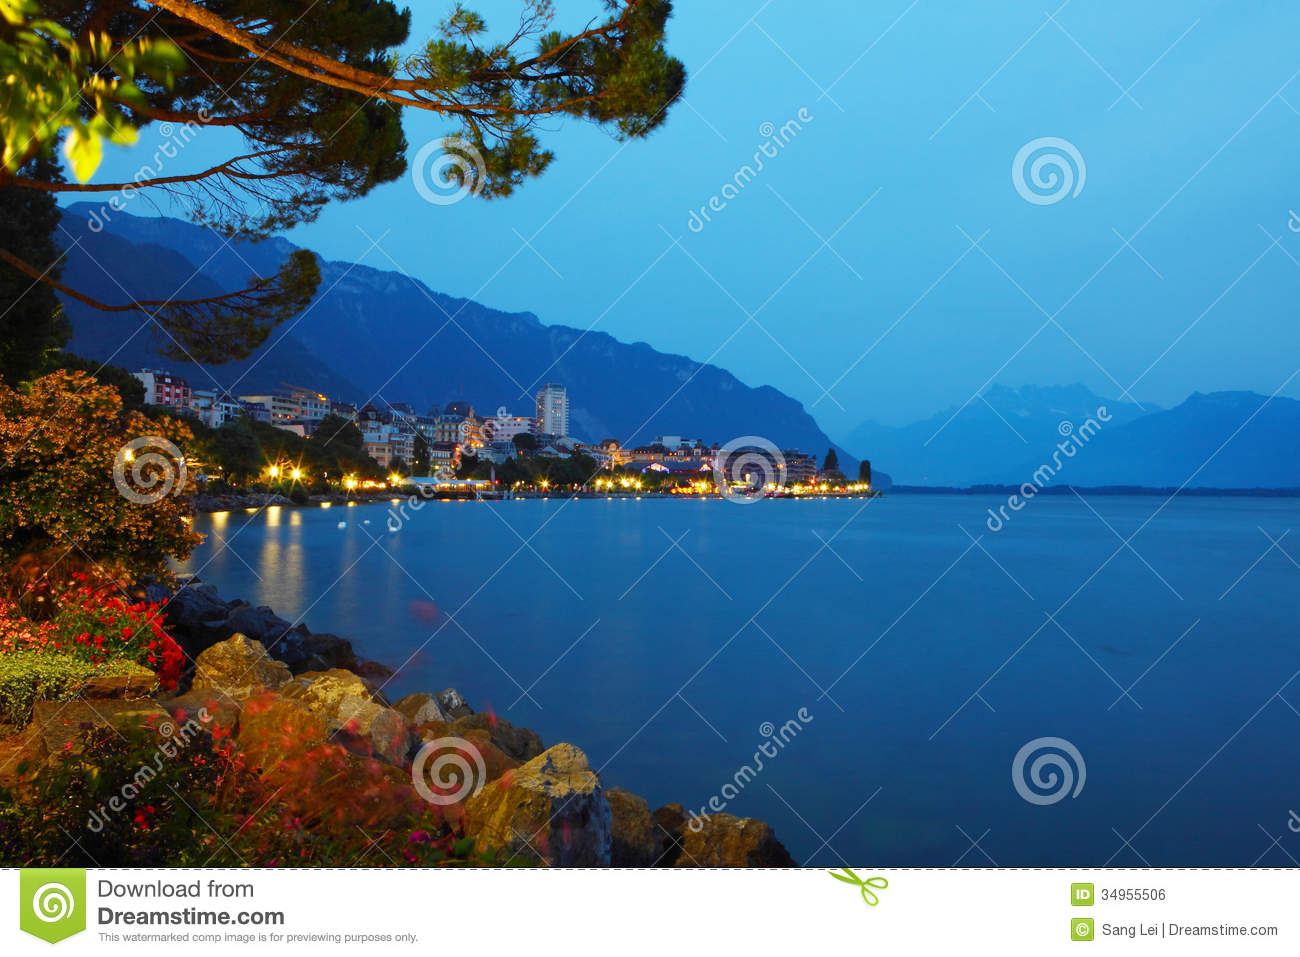 Montreux night